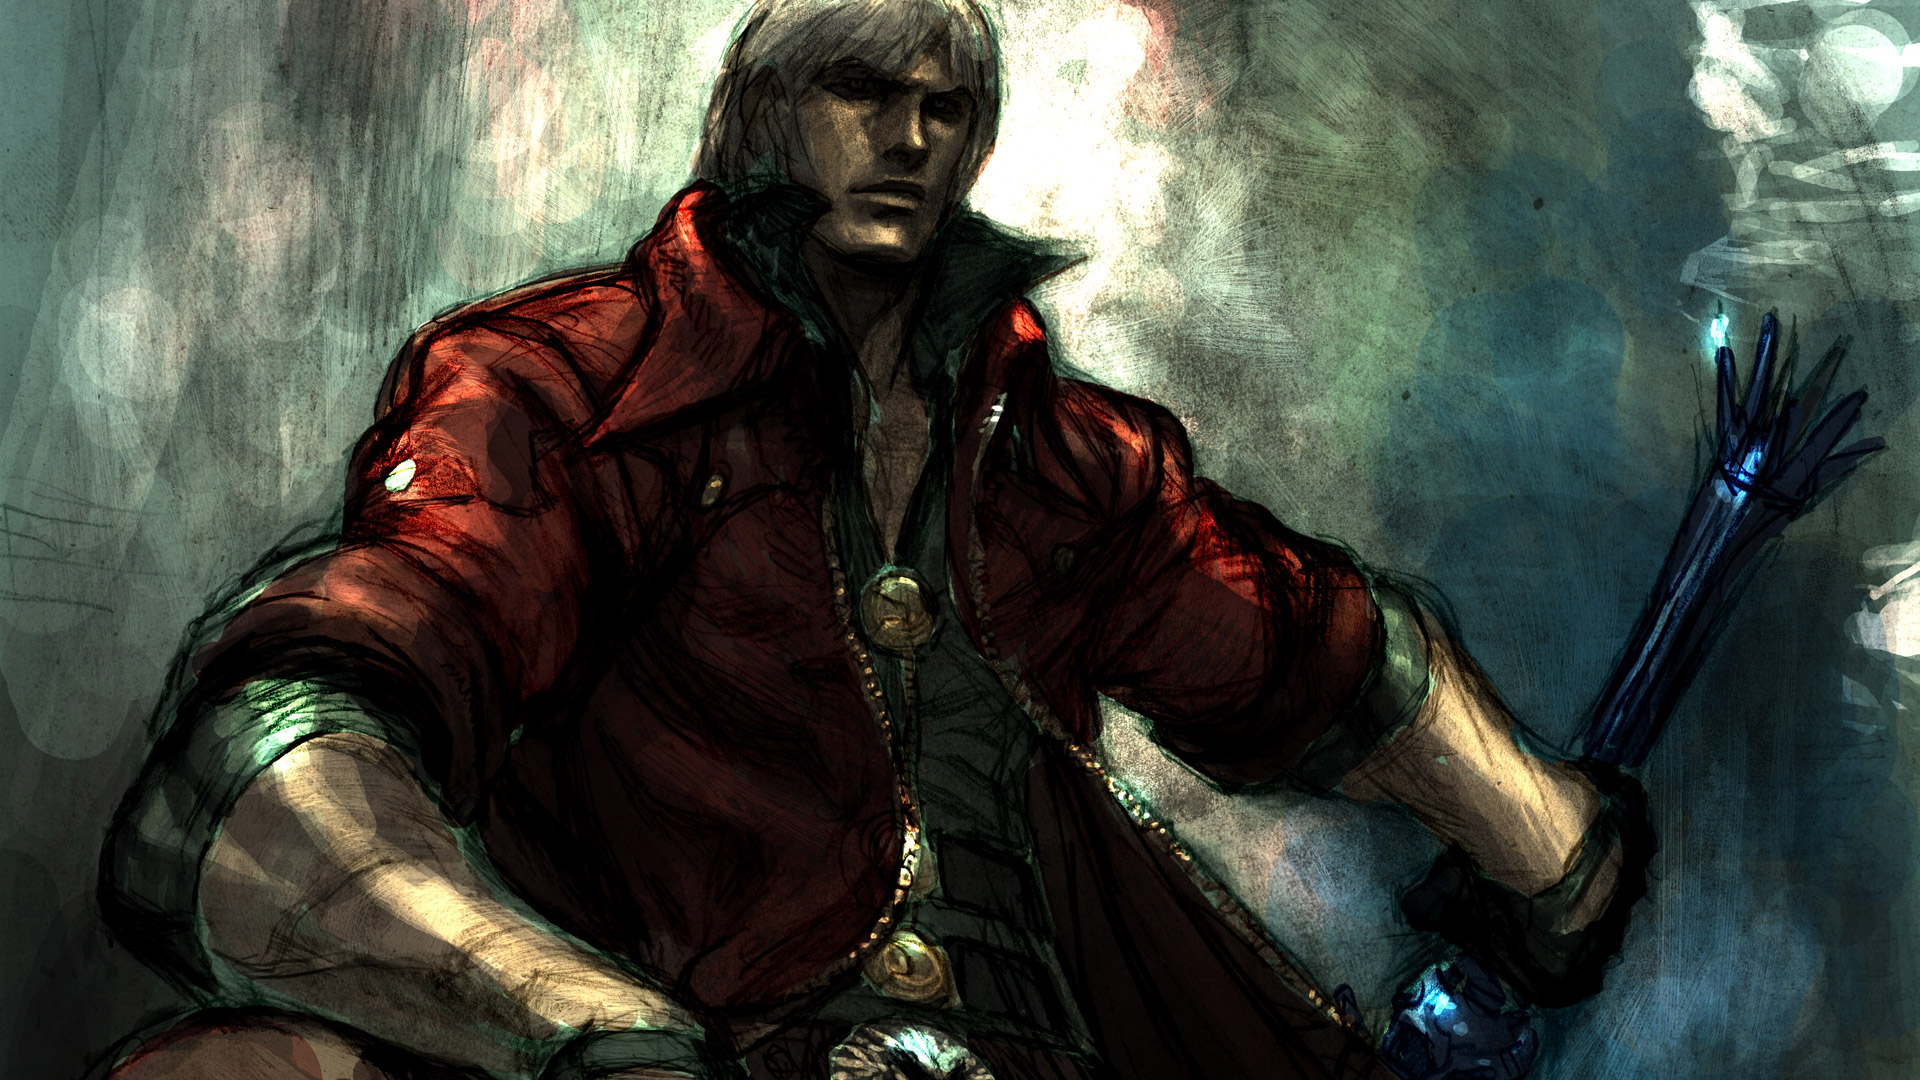 Dante Devil May Cry 1609202 Hd Wallpaper Backgrounds Download